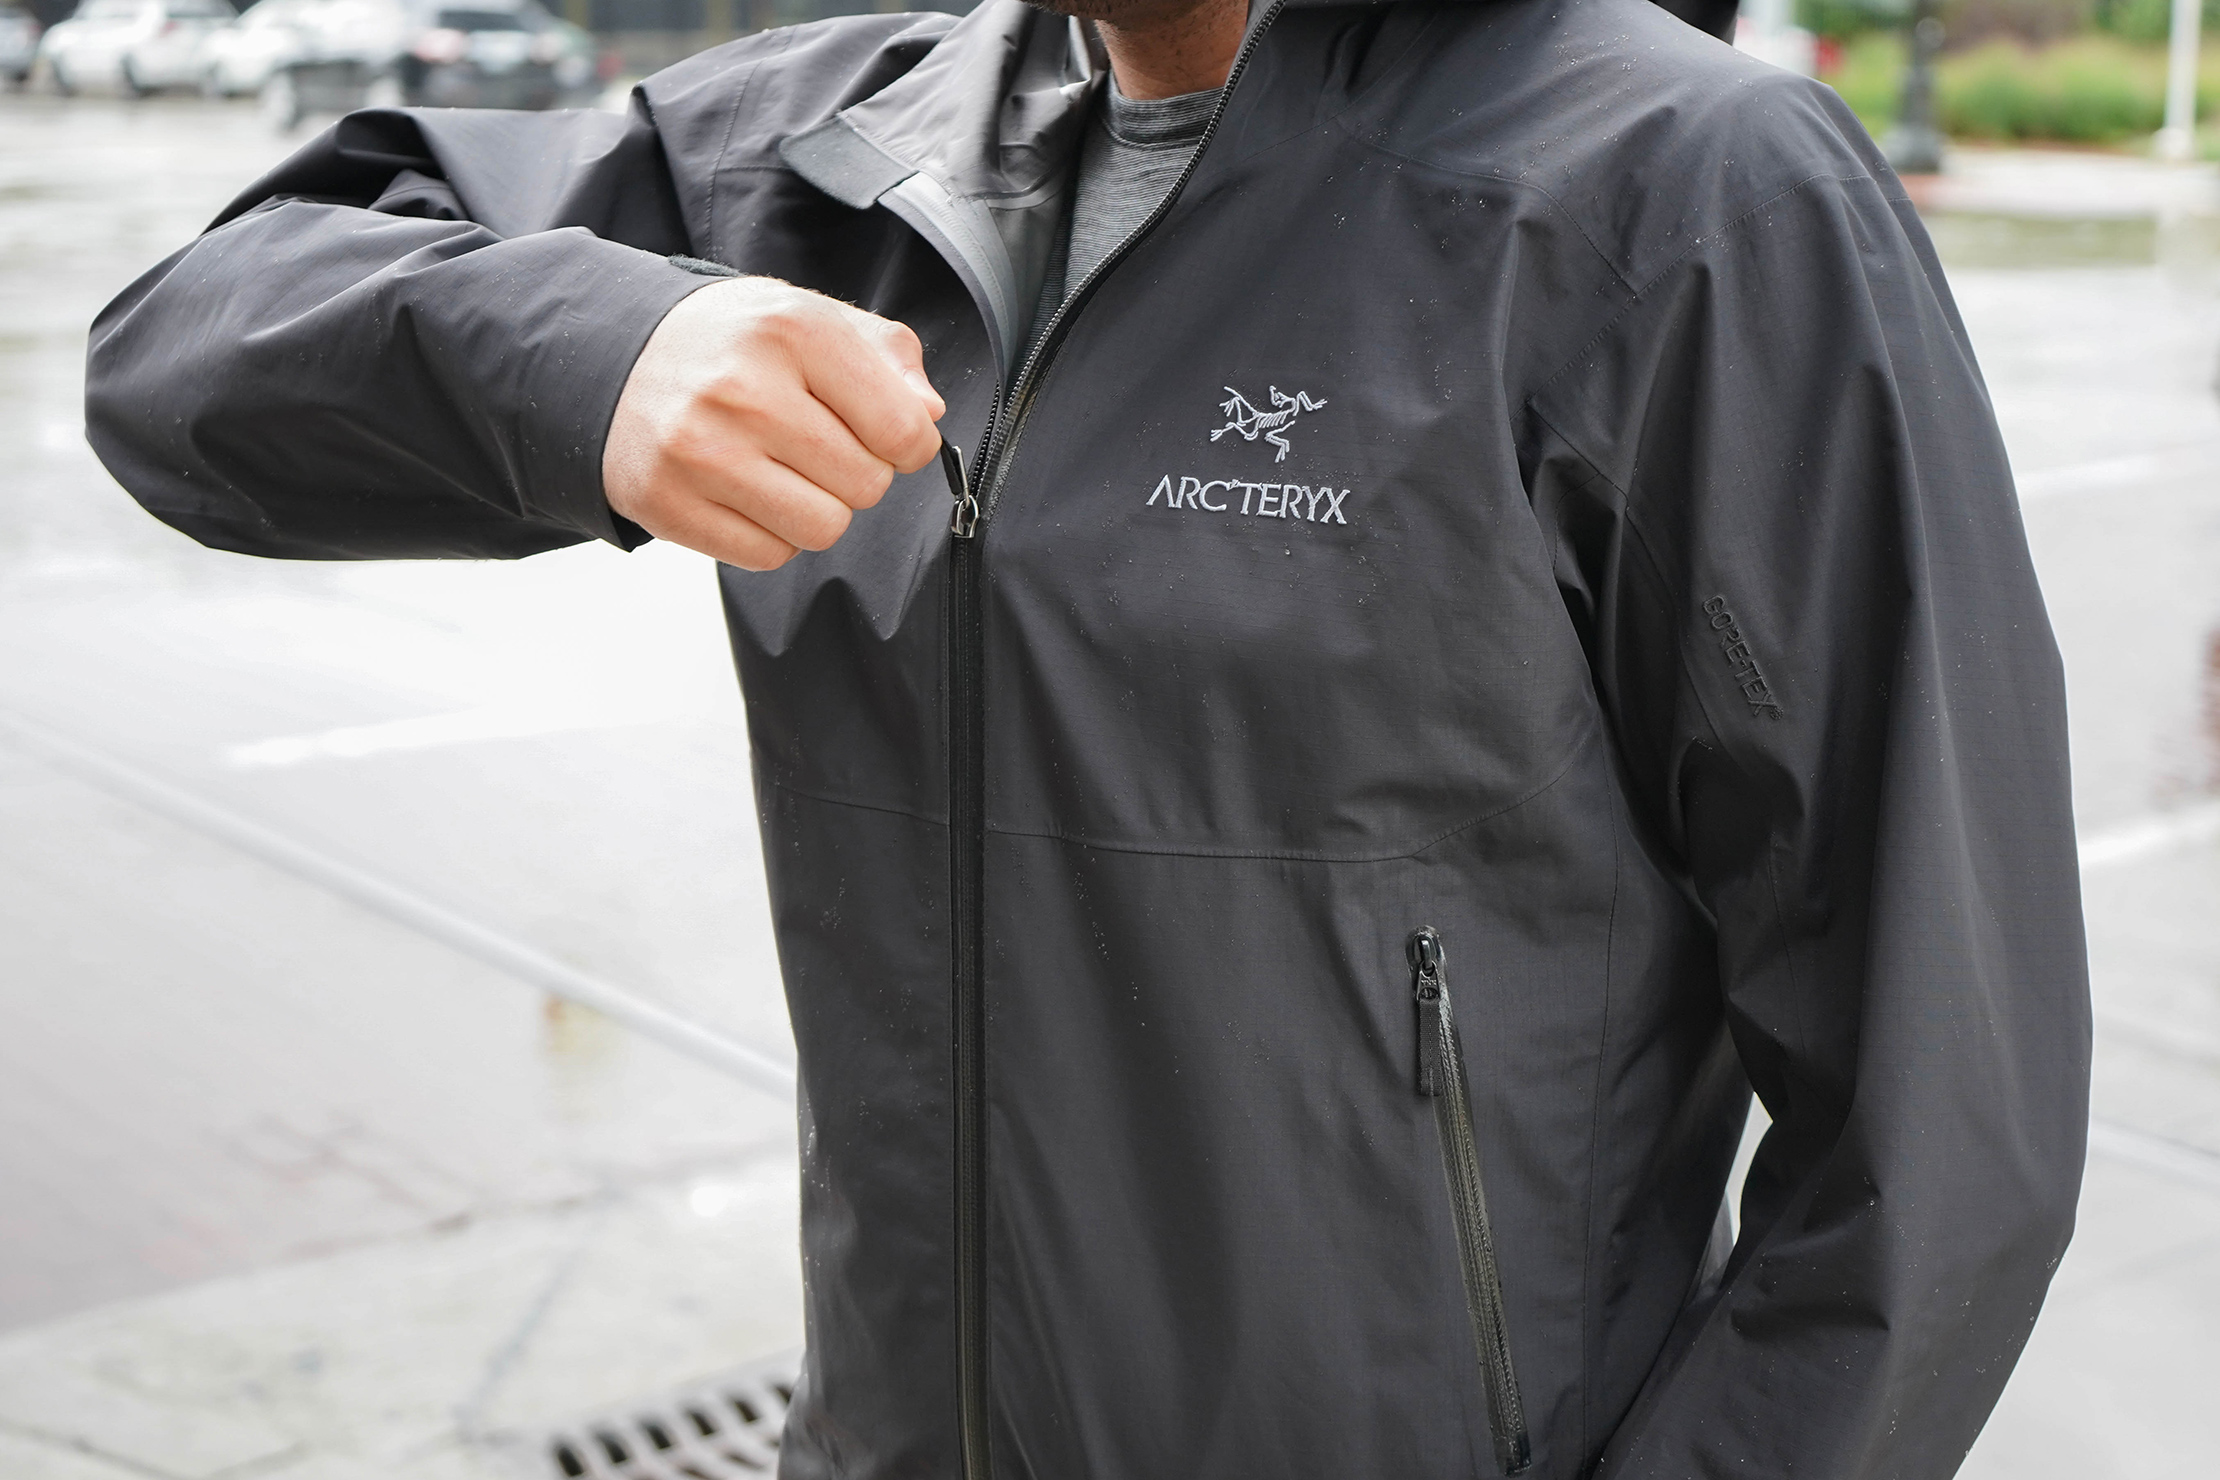 Arc'teryx Zeta SL Jacket Zipped Up